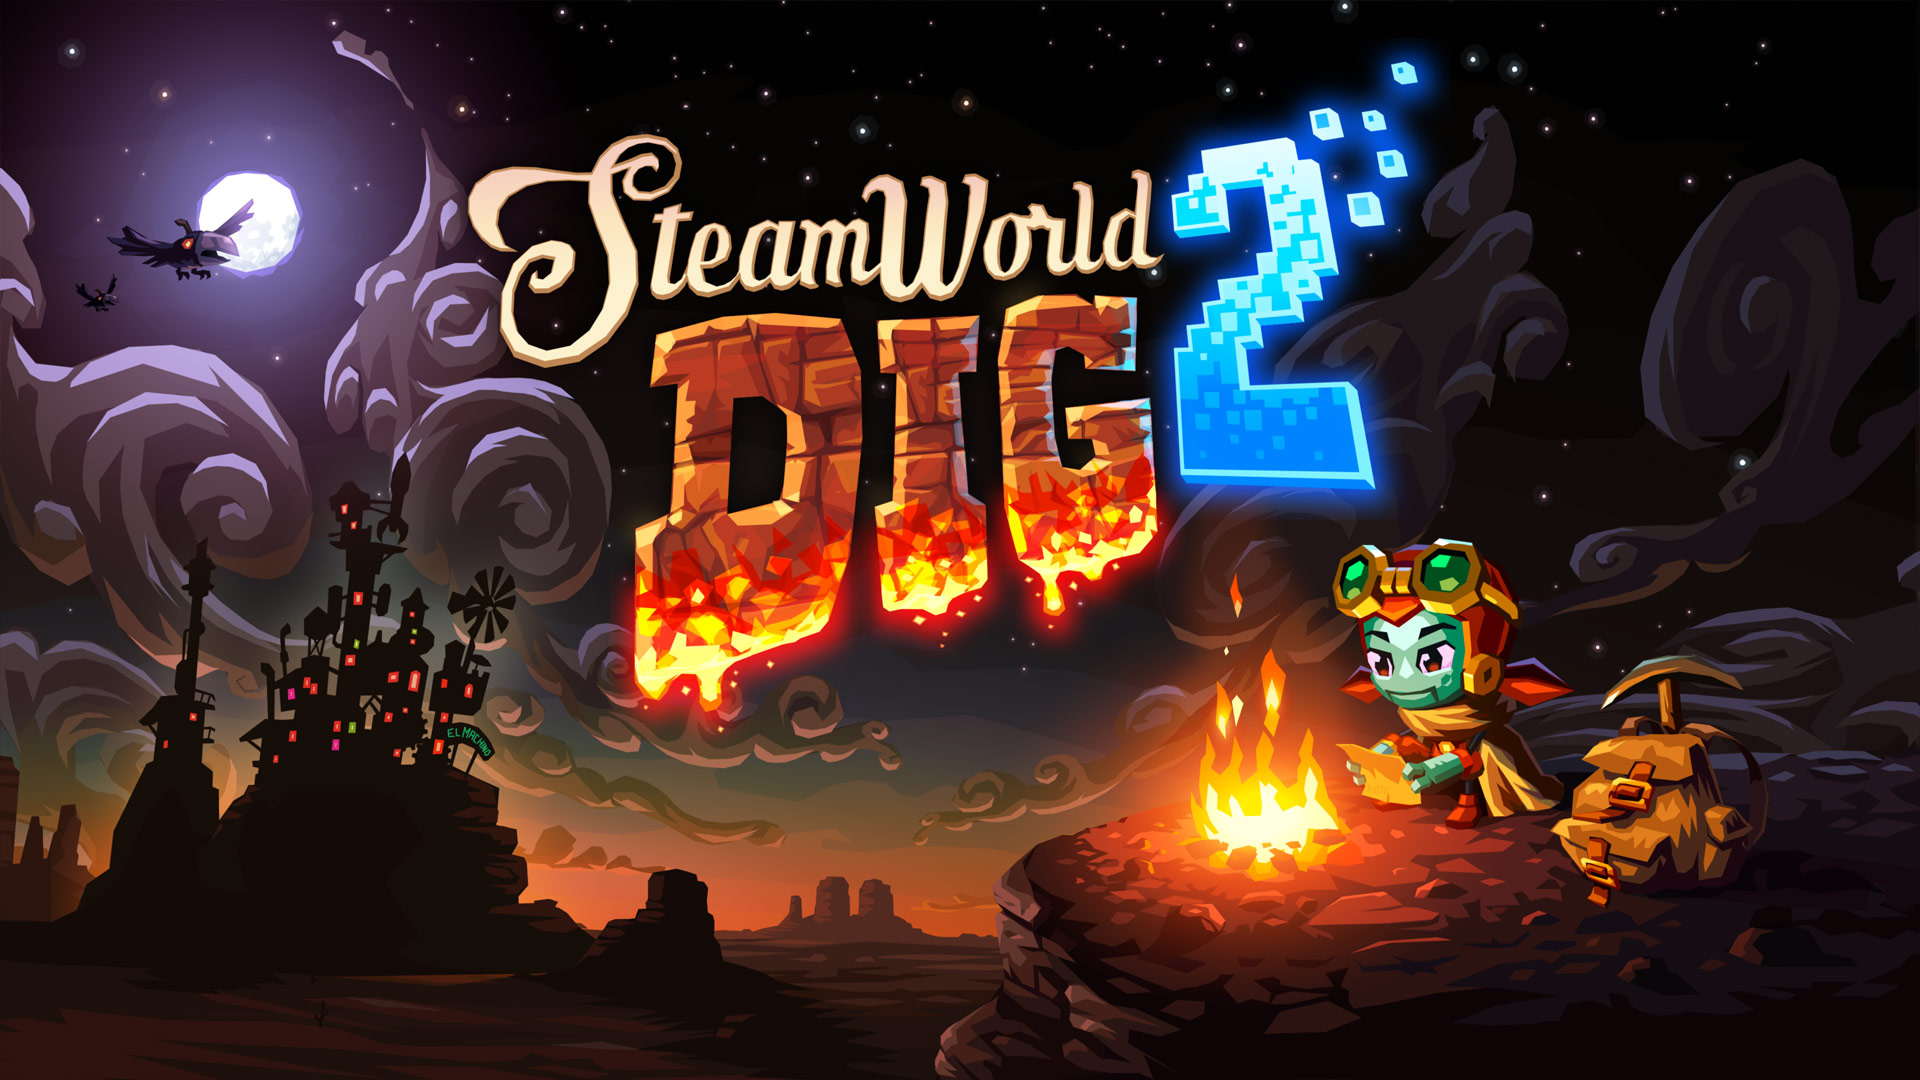 SteamWorld Dig 2 Nintendo Switch Wallpaper Cover Art